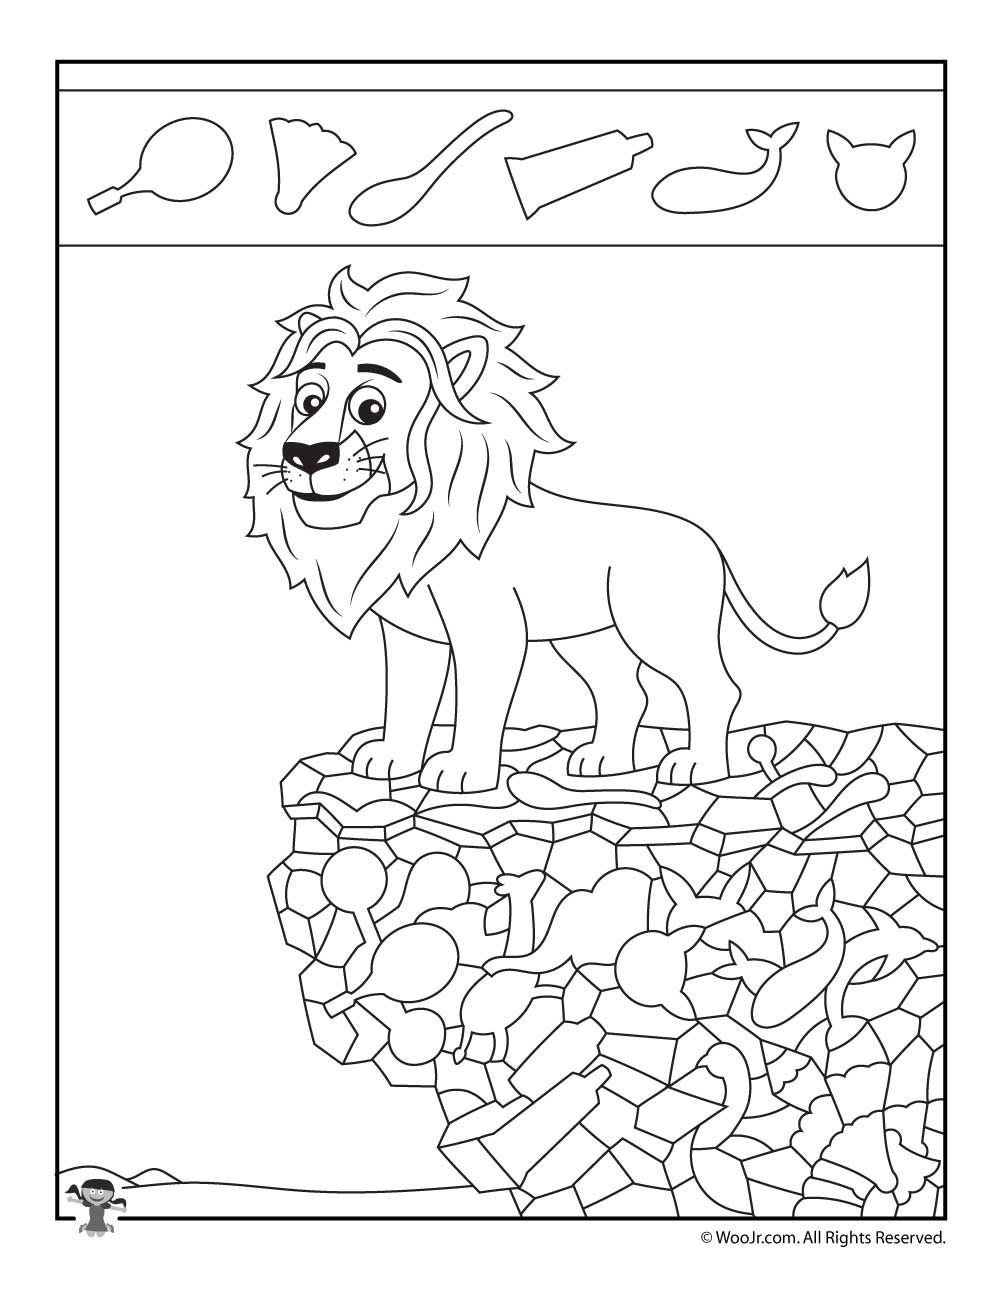 Hidden Animal Pictures Worksheets Easy Hidden with Animals Printable Activity Pages